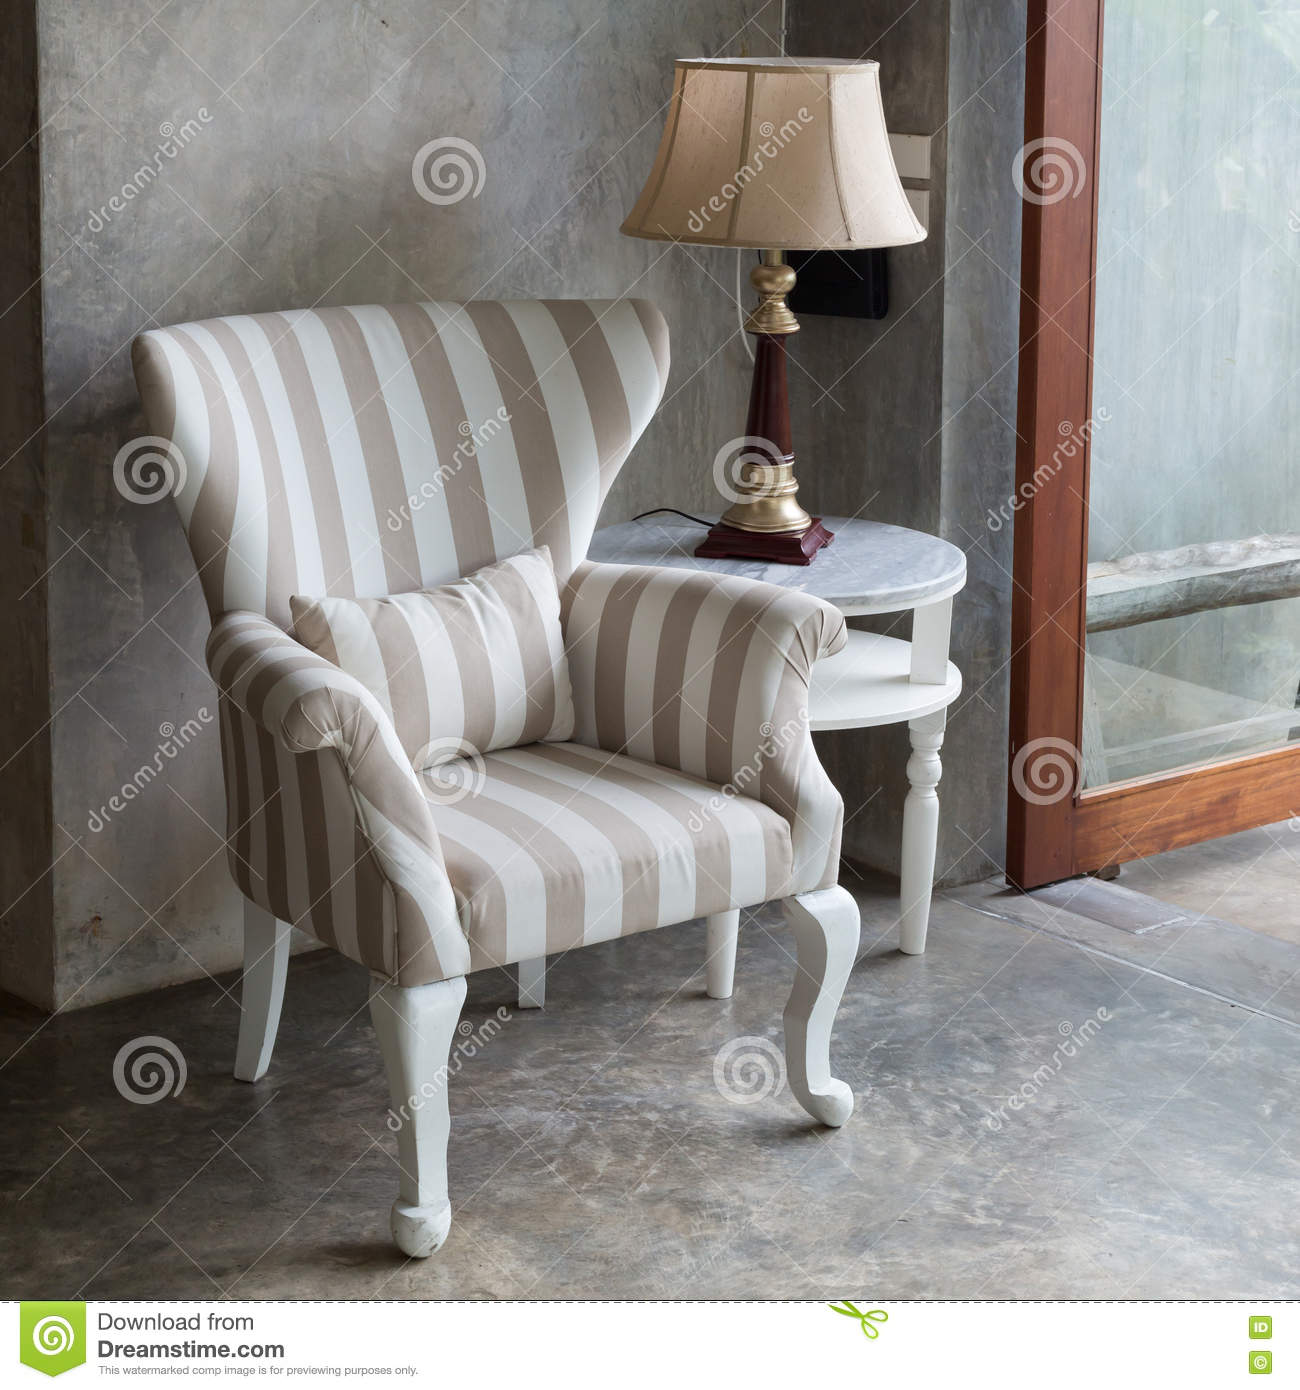 Rc Furniture Interior Design Stock Dealer ~ Empty living room interior in modern style royalty free